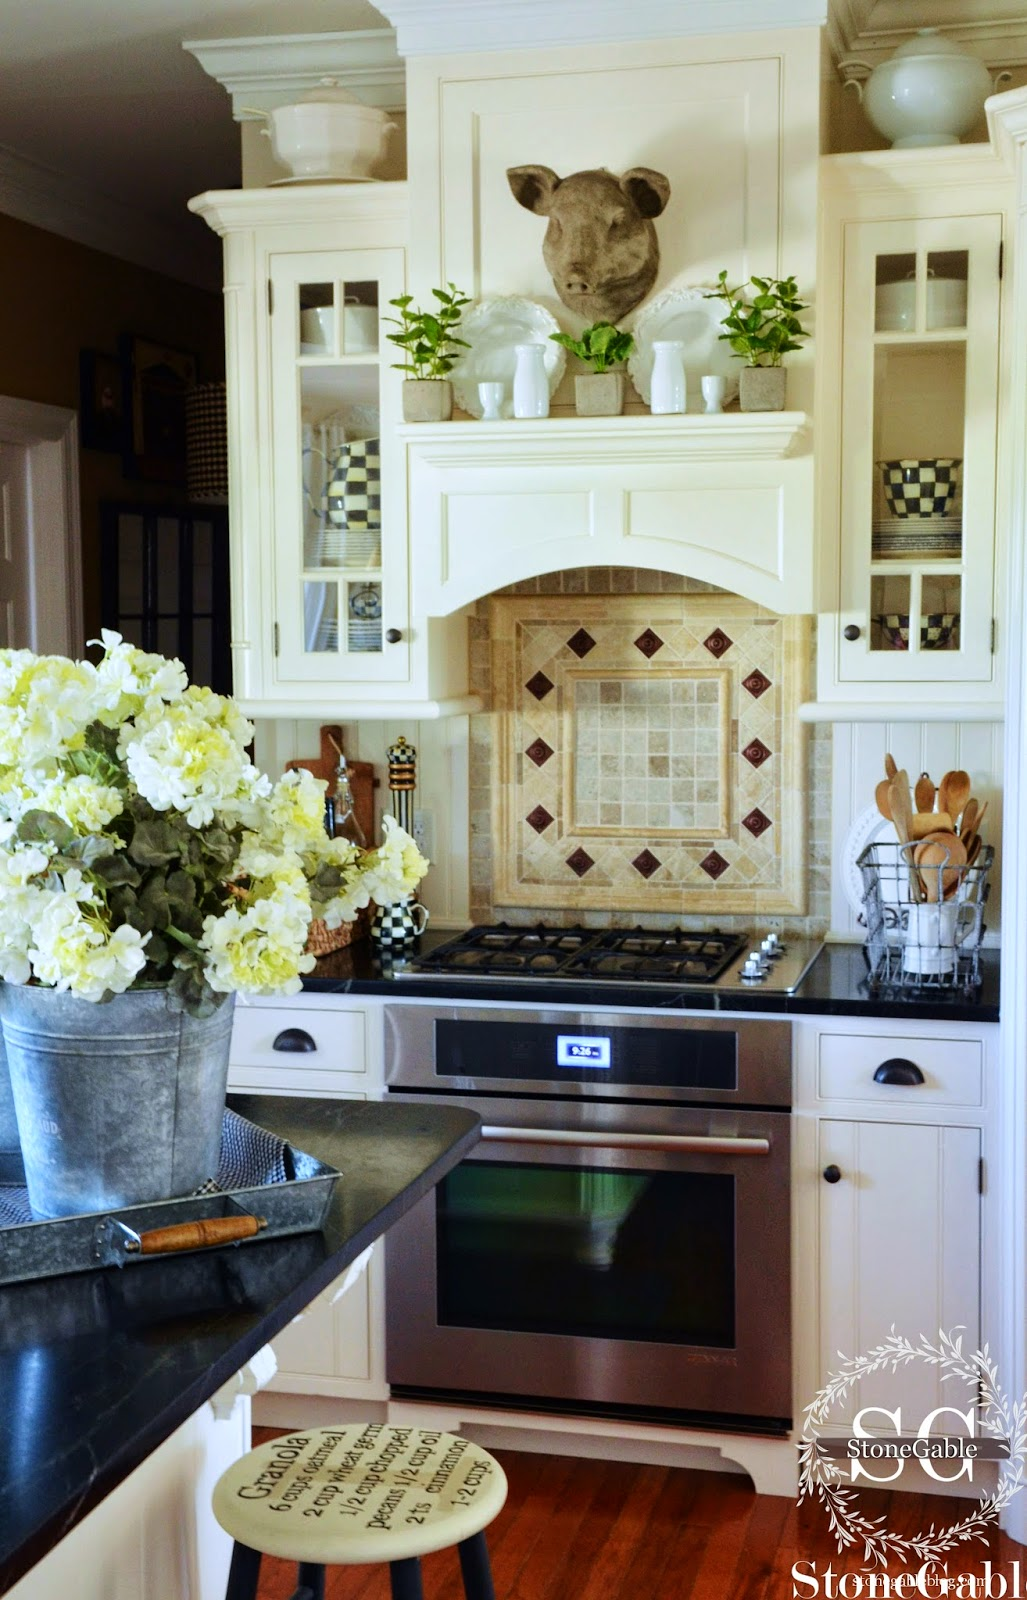 The wire basket (Decor Steals) holds two white ironstone ...